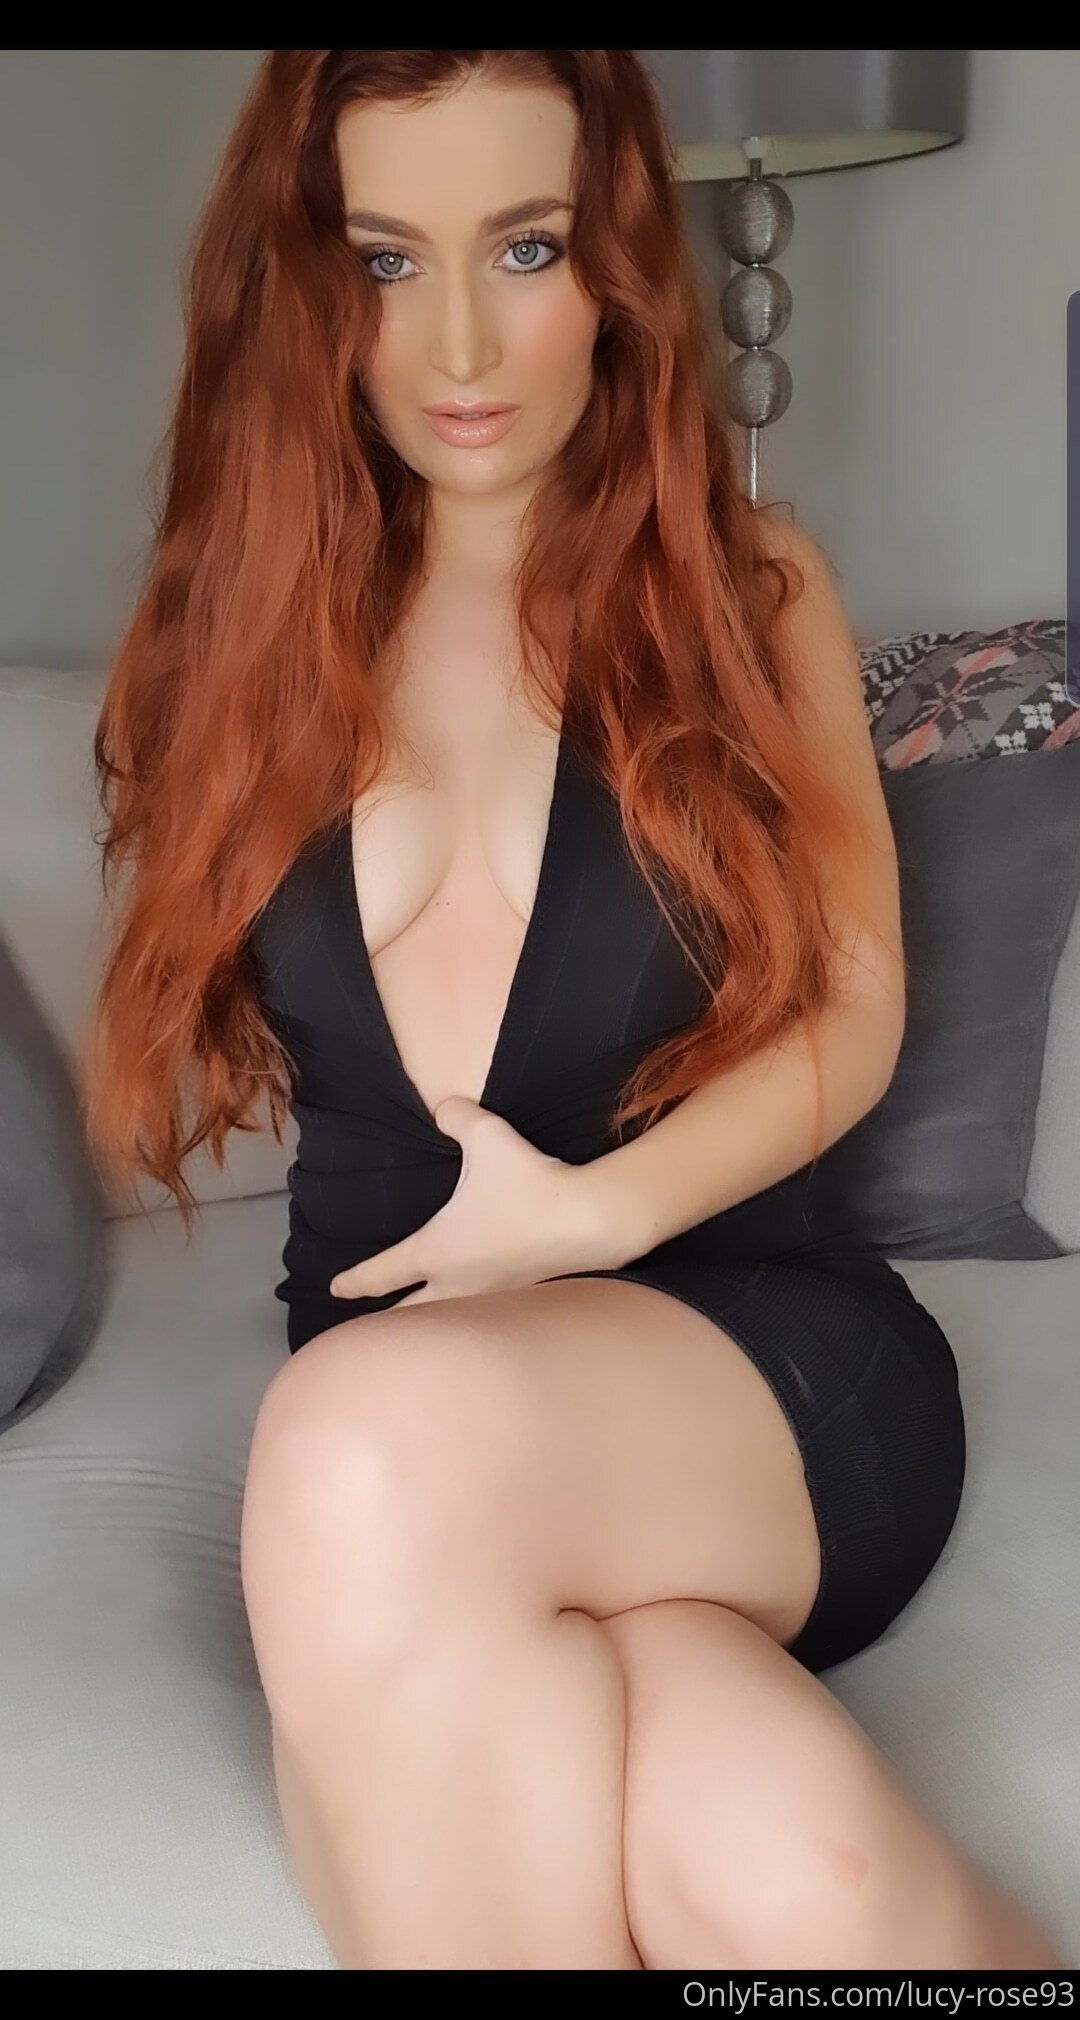 Lucy Rose, Lucy Rose93, Onlyfans 0061